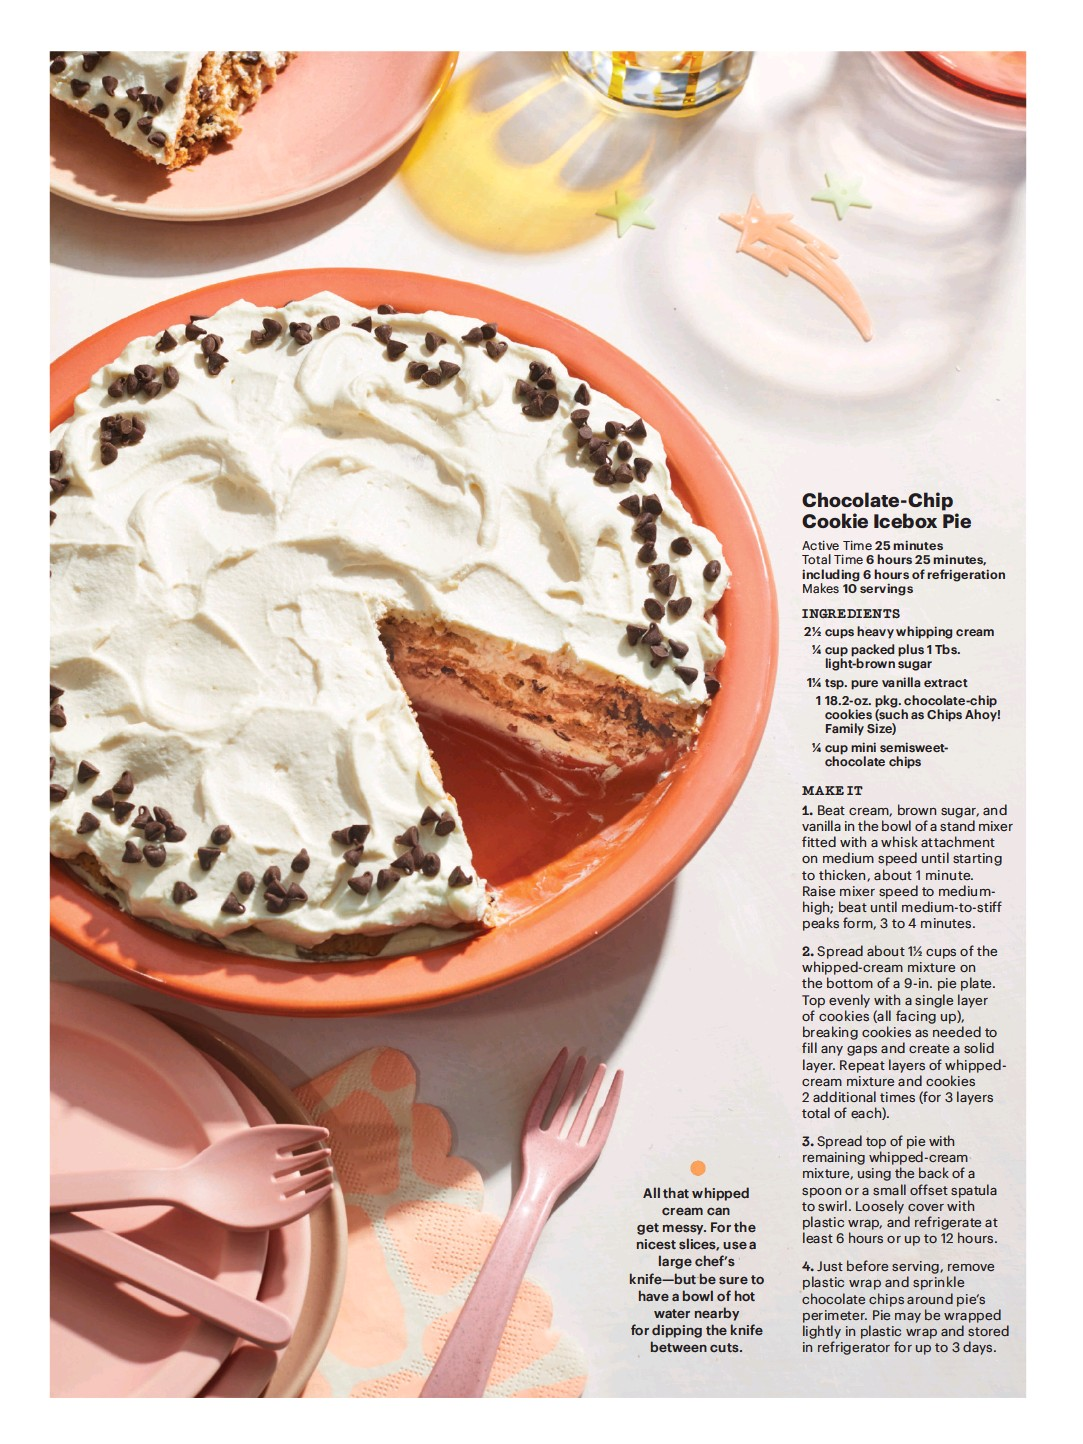 ??  ?? All that whipped cream can get messy. For the nicest slices, use a large chef's knife—but be sure to have a bowl of hot water nearby for dipping the knife between cuts.